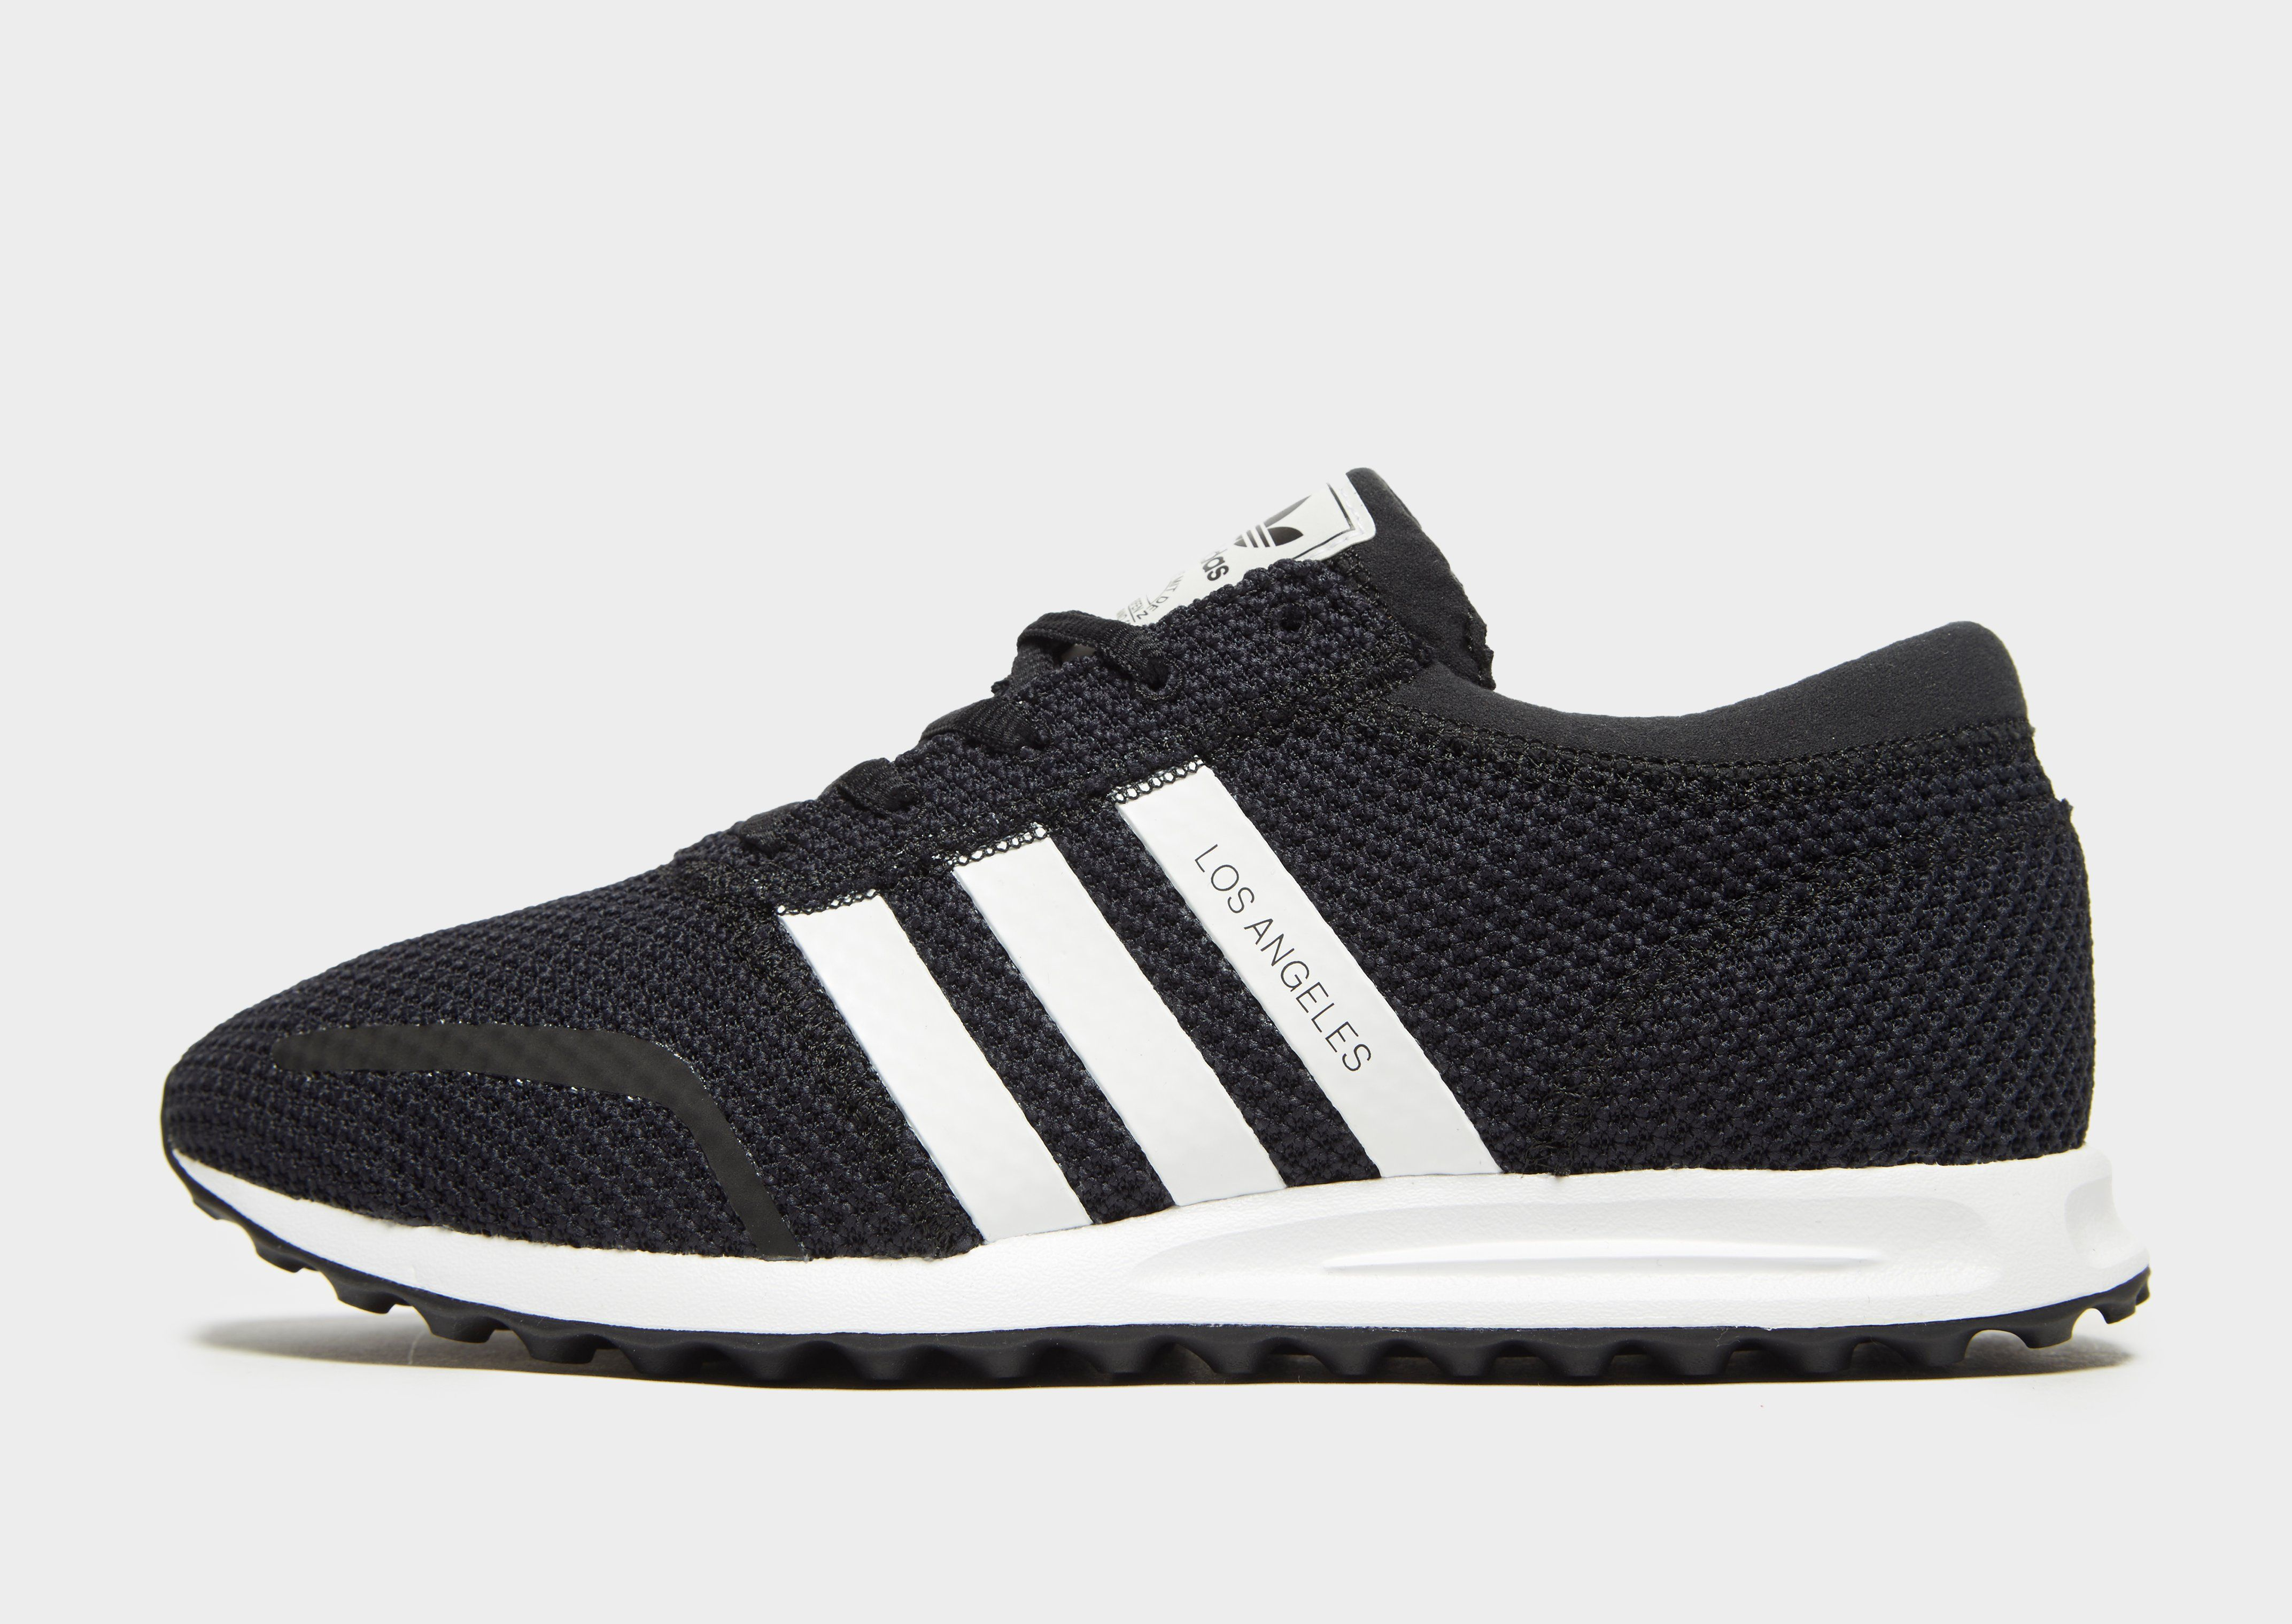 6d86fc884 Imágenes de Can You Return Adidas Online Orders In Store